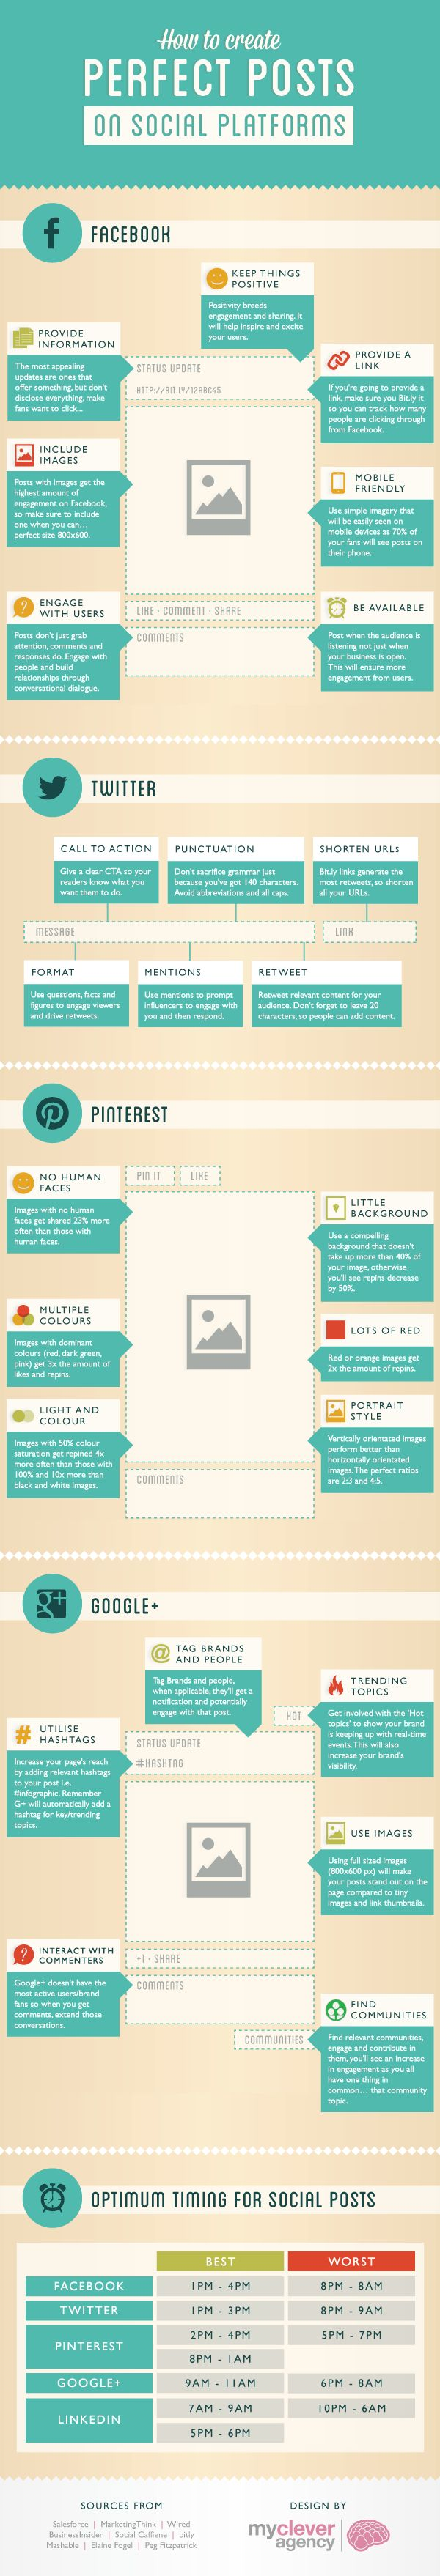 Perfect social media posts #Facebook #Twitter #Pinterest #Google+ #Timing #Strategy